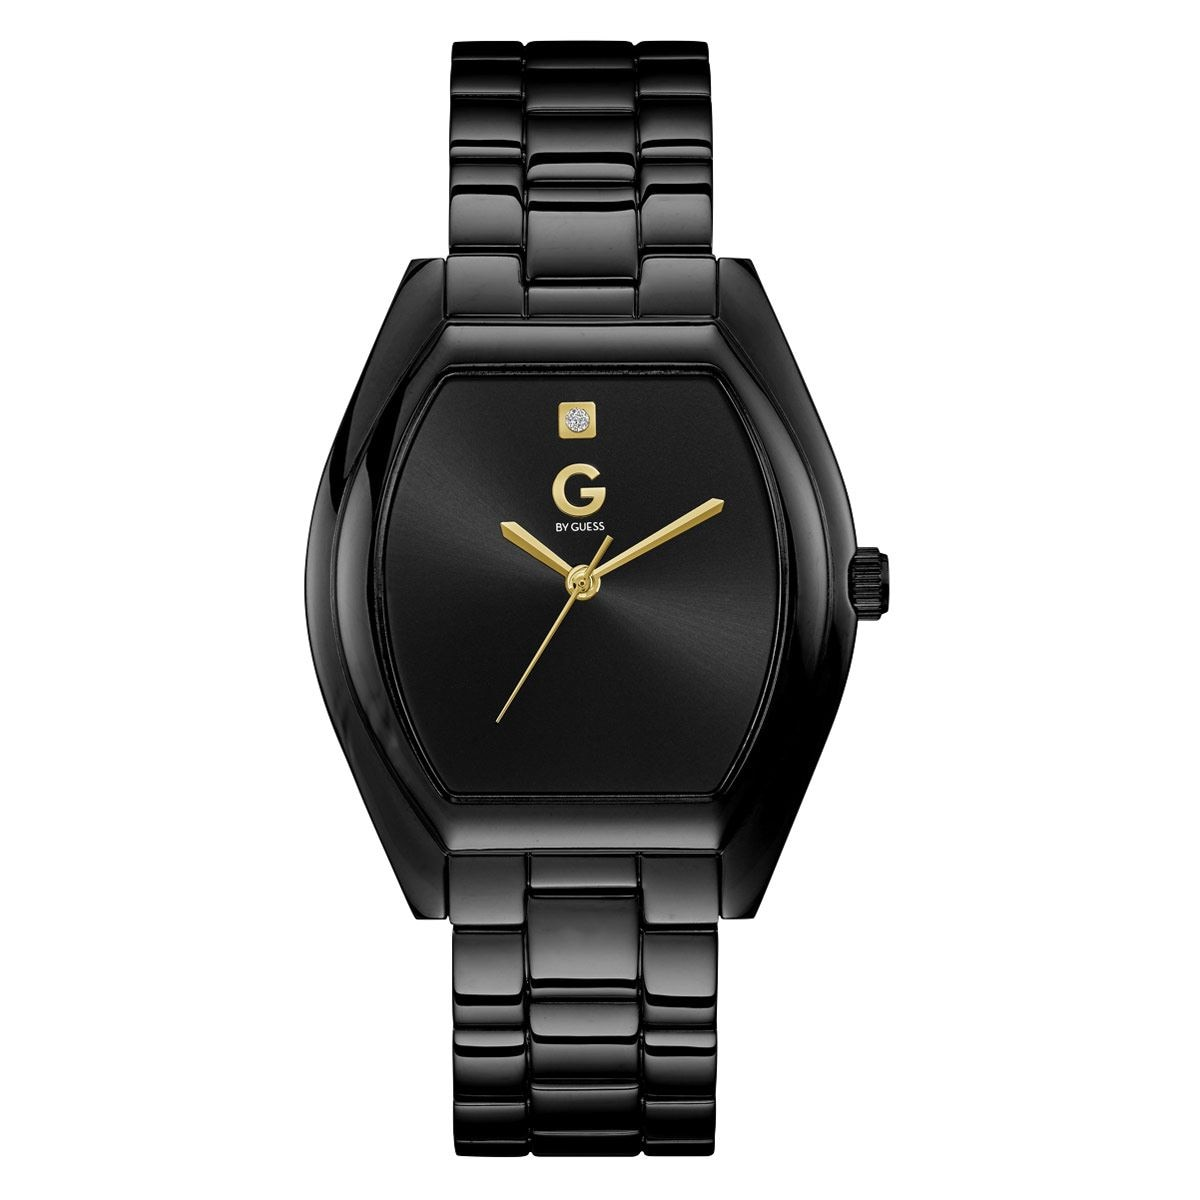 Reloj G BY Guess G10963G1 Cab Negro